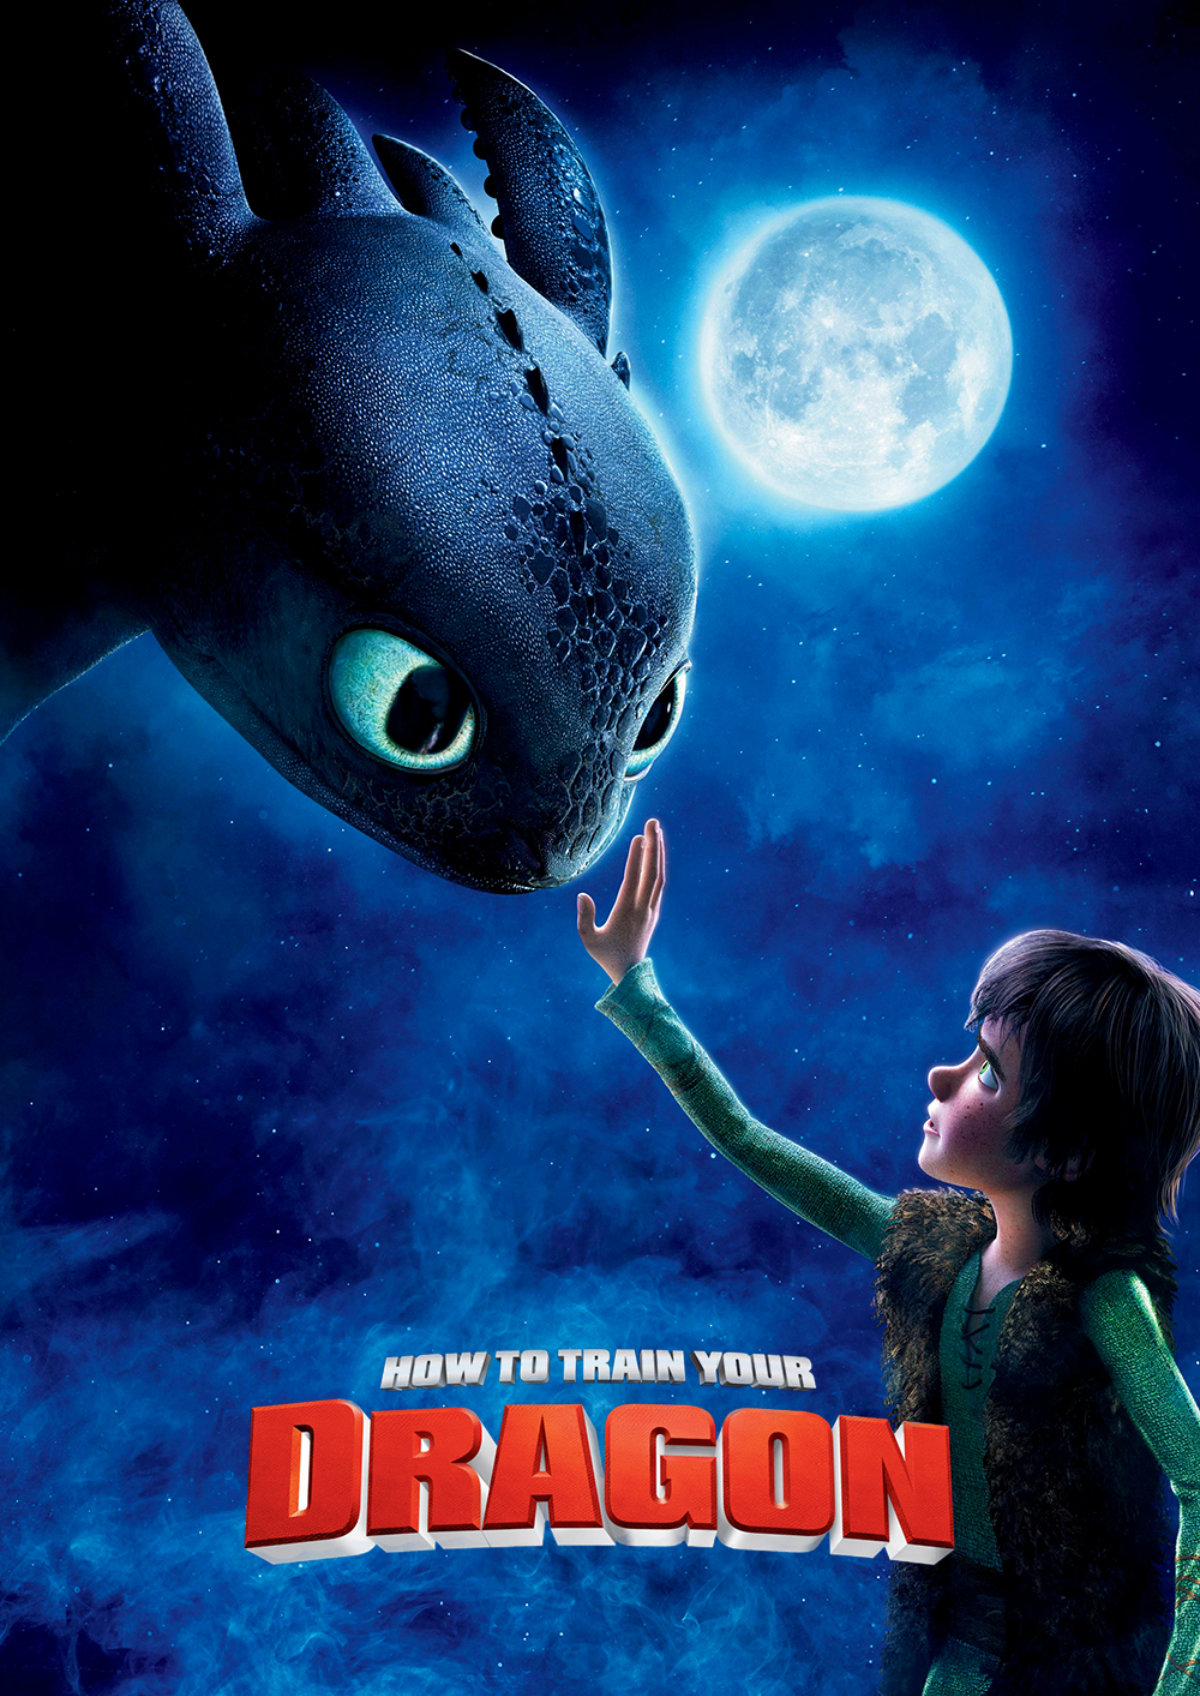 'How To Train Your Dragon' movie poster